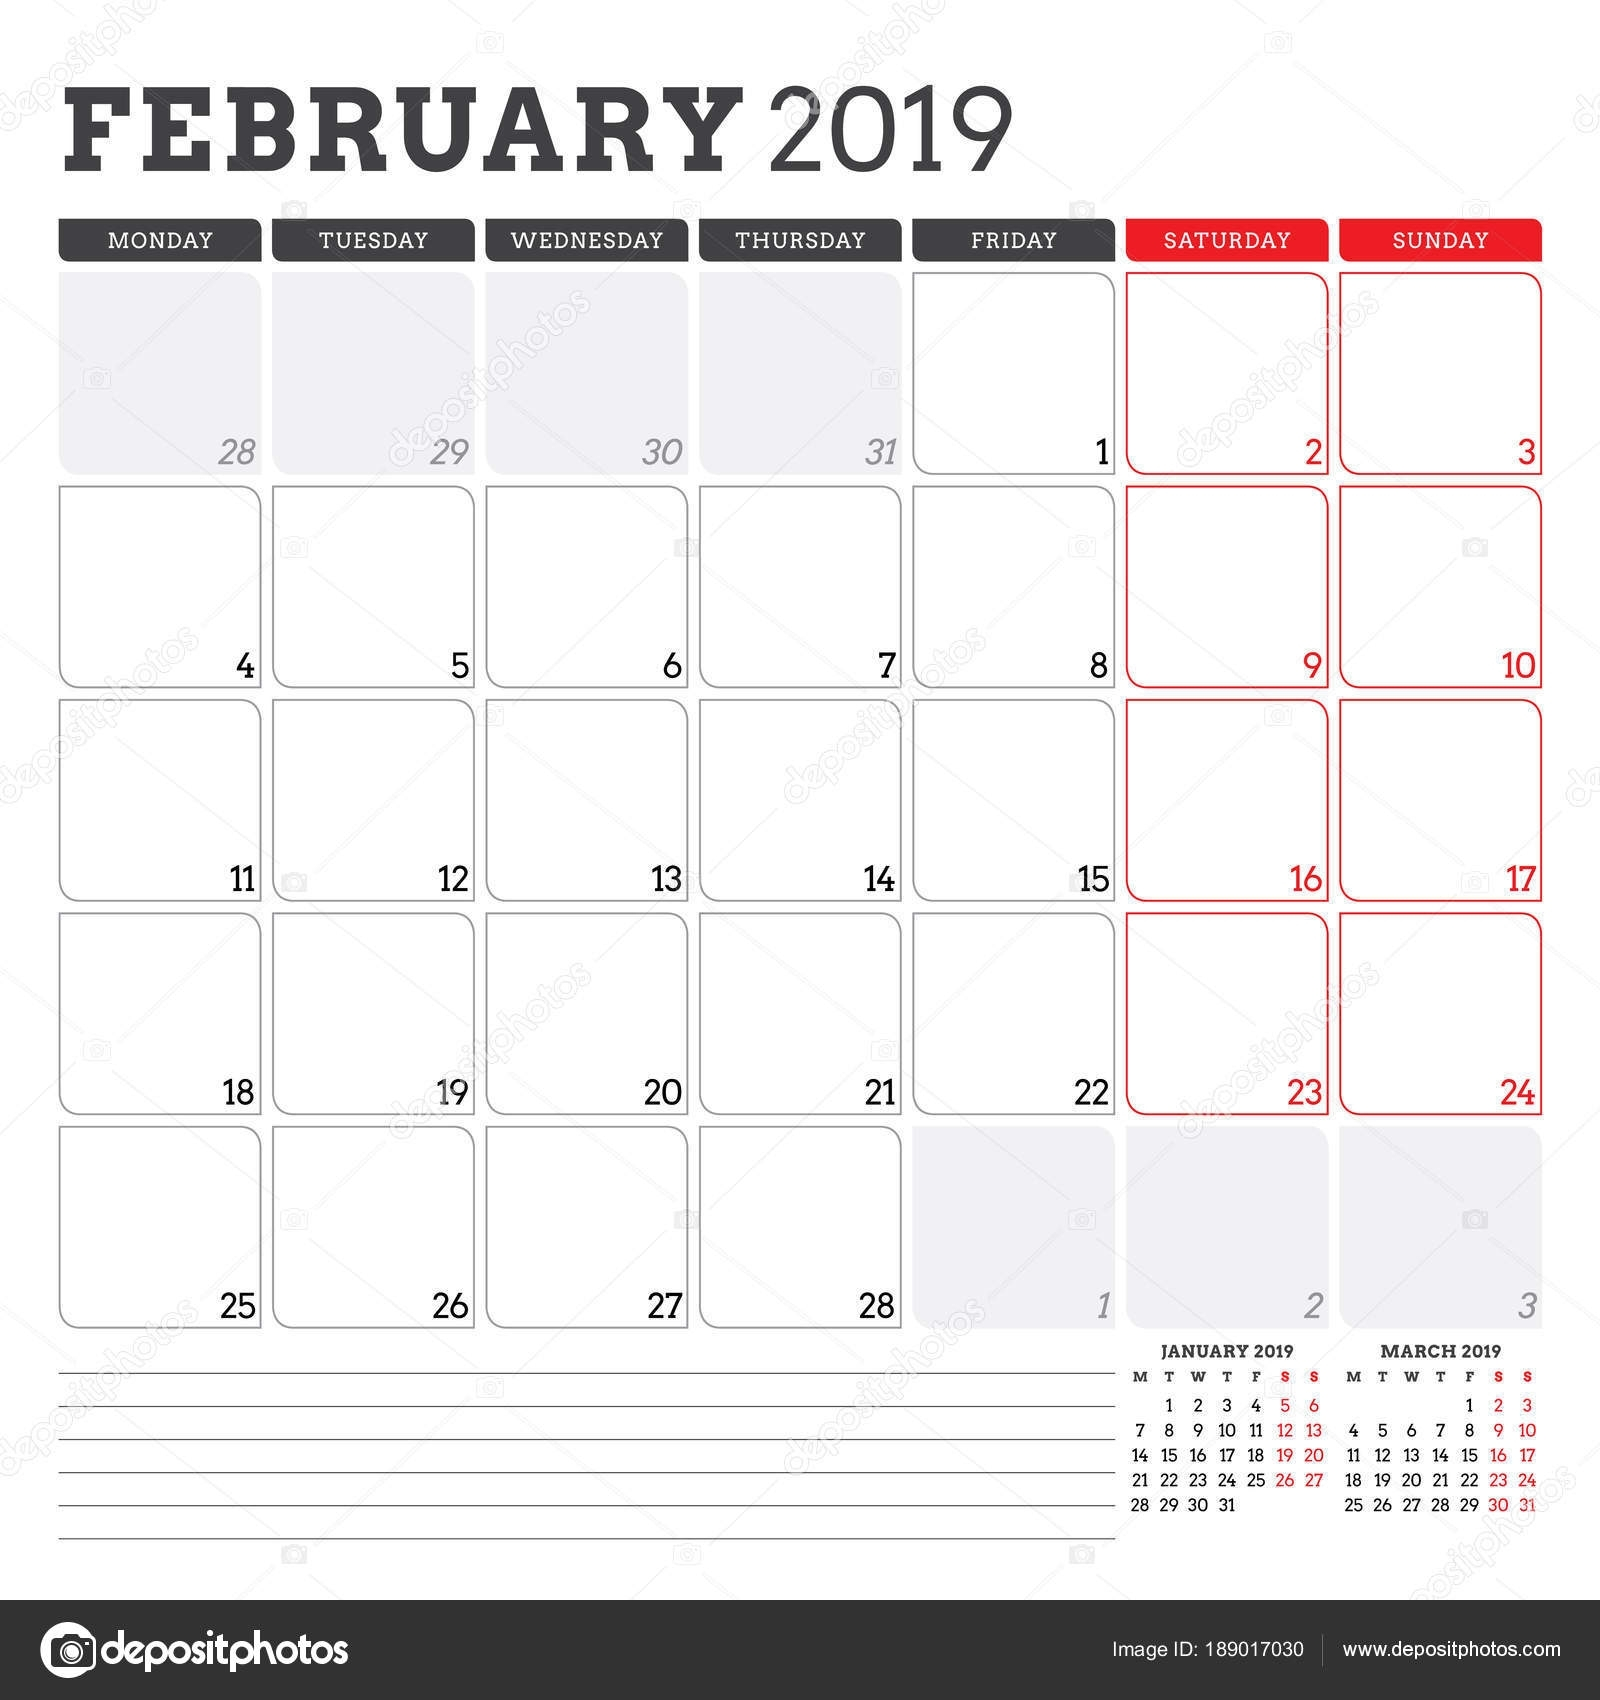 Calendar Planner For February 2019. Week Starts On Monday. Printable within Weekly Calandar Template Starting Monday